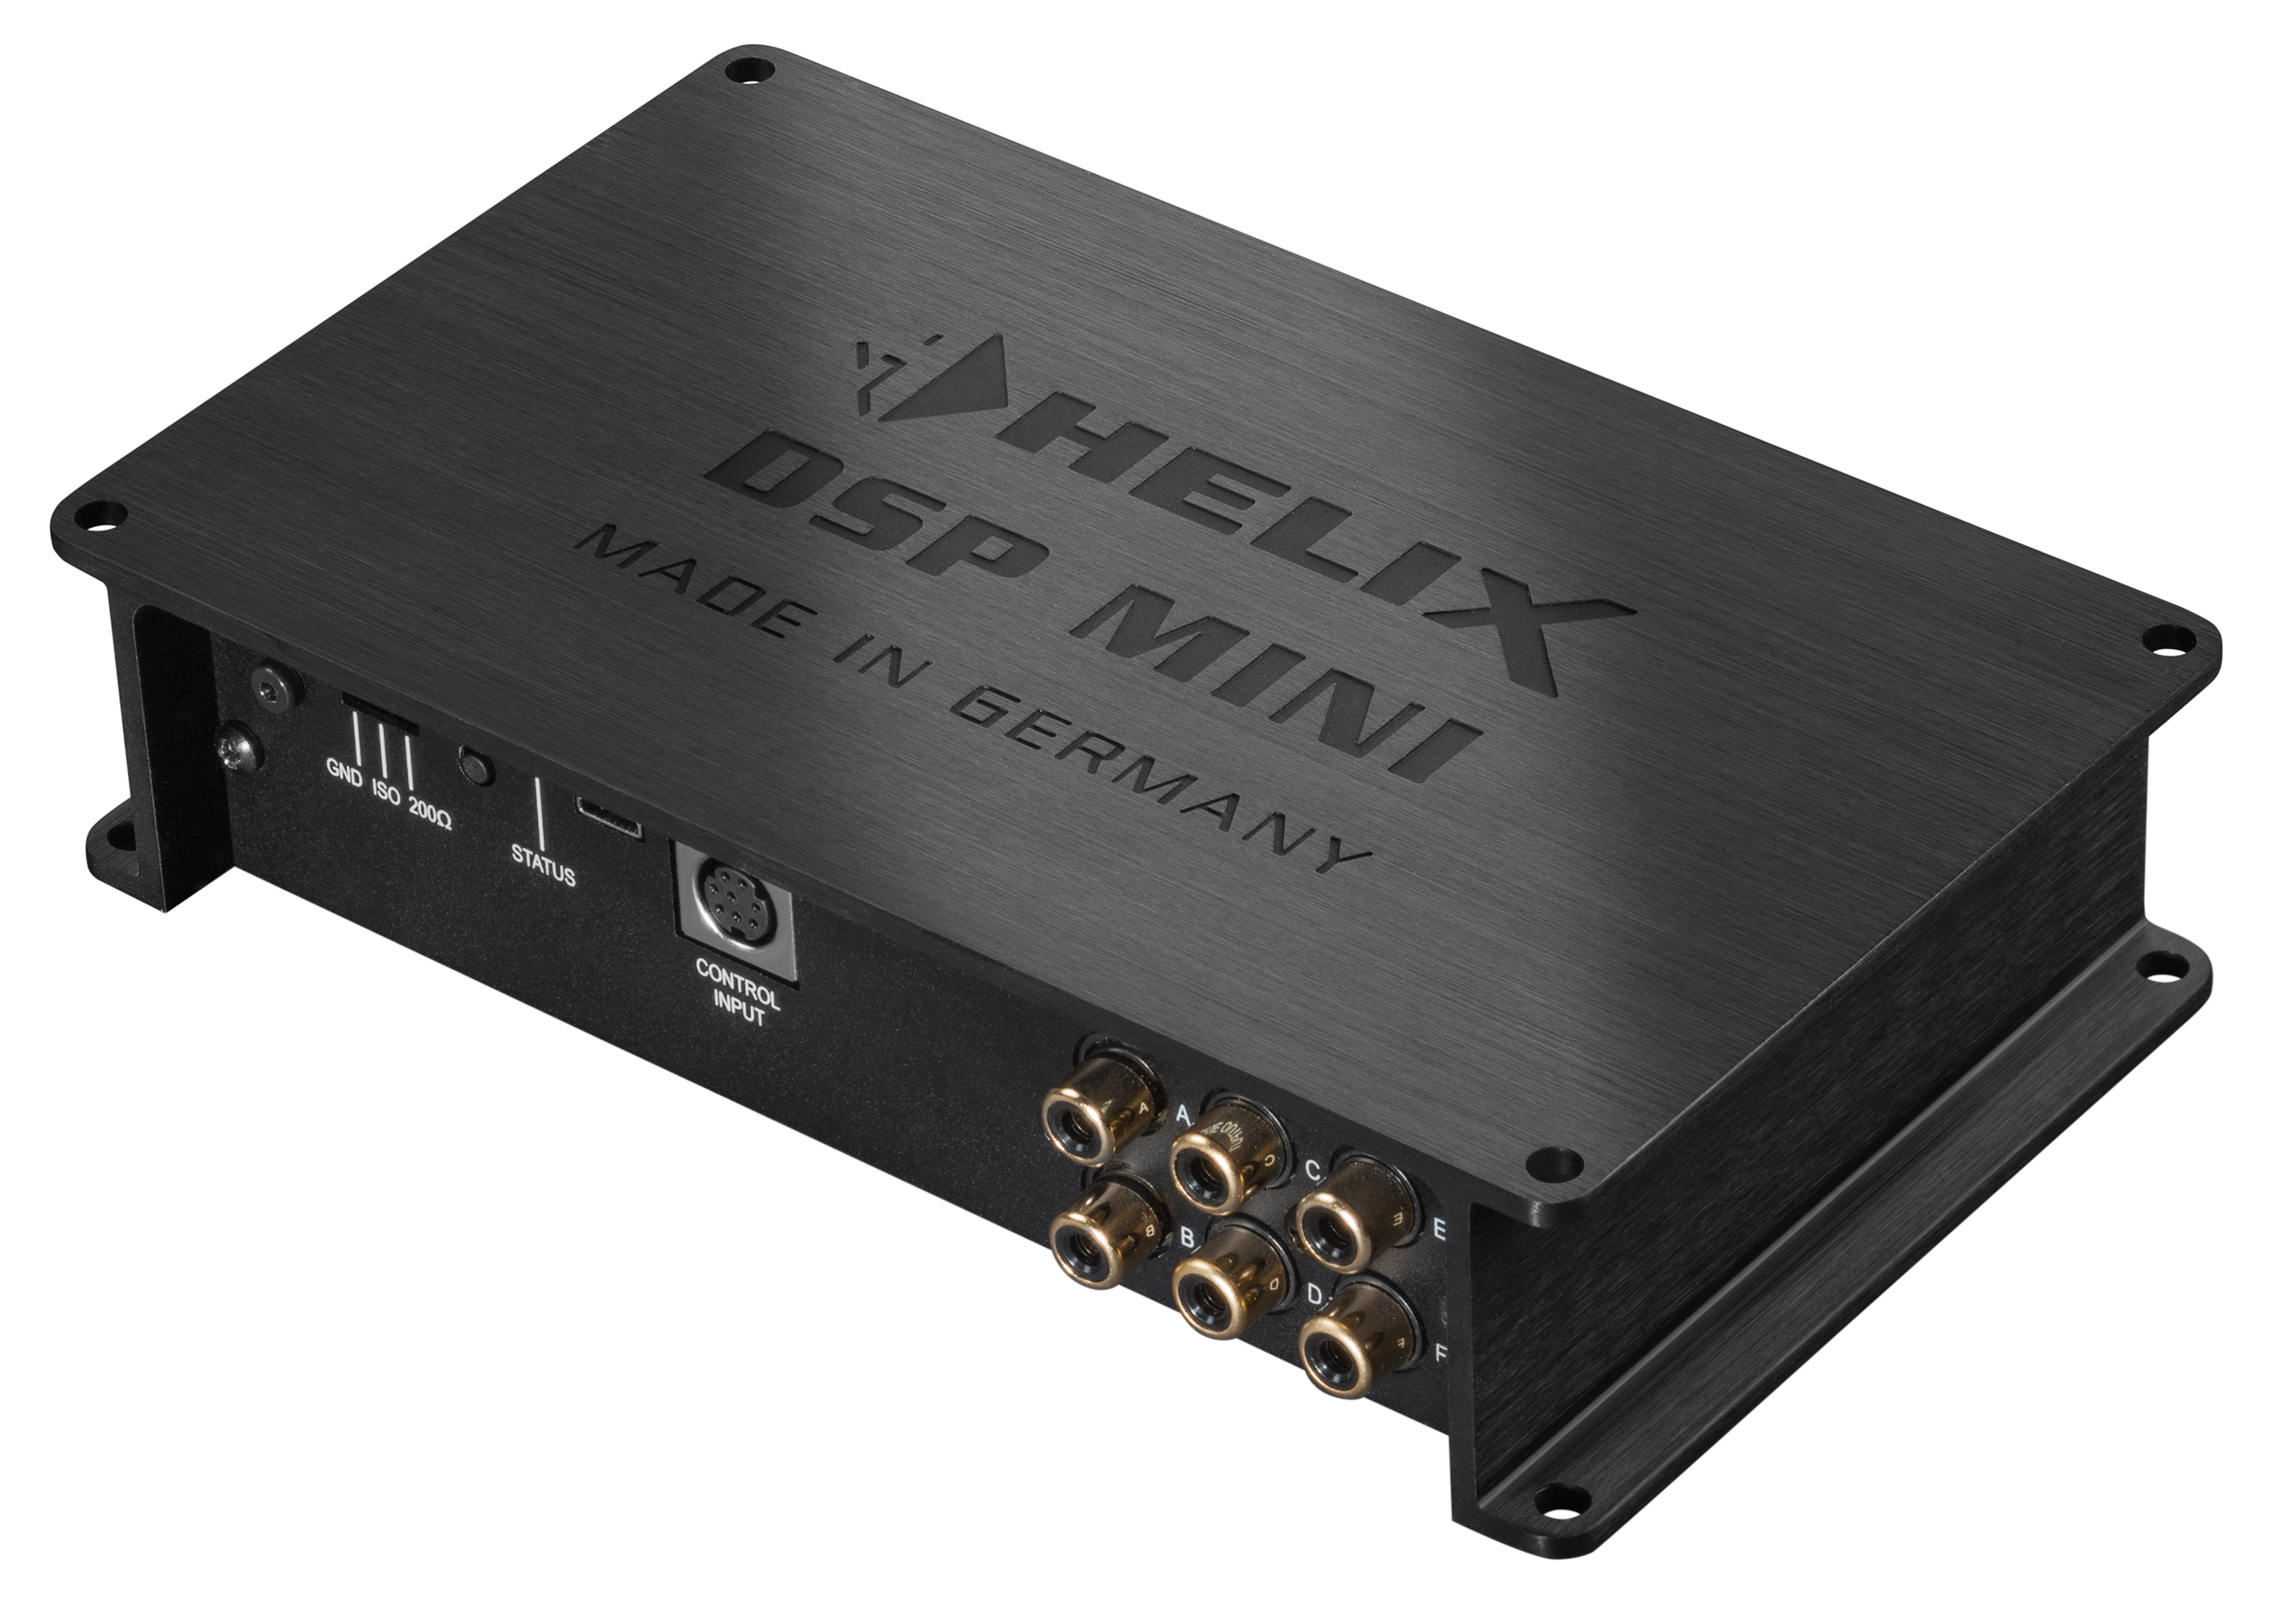 Helix DSP Mini